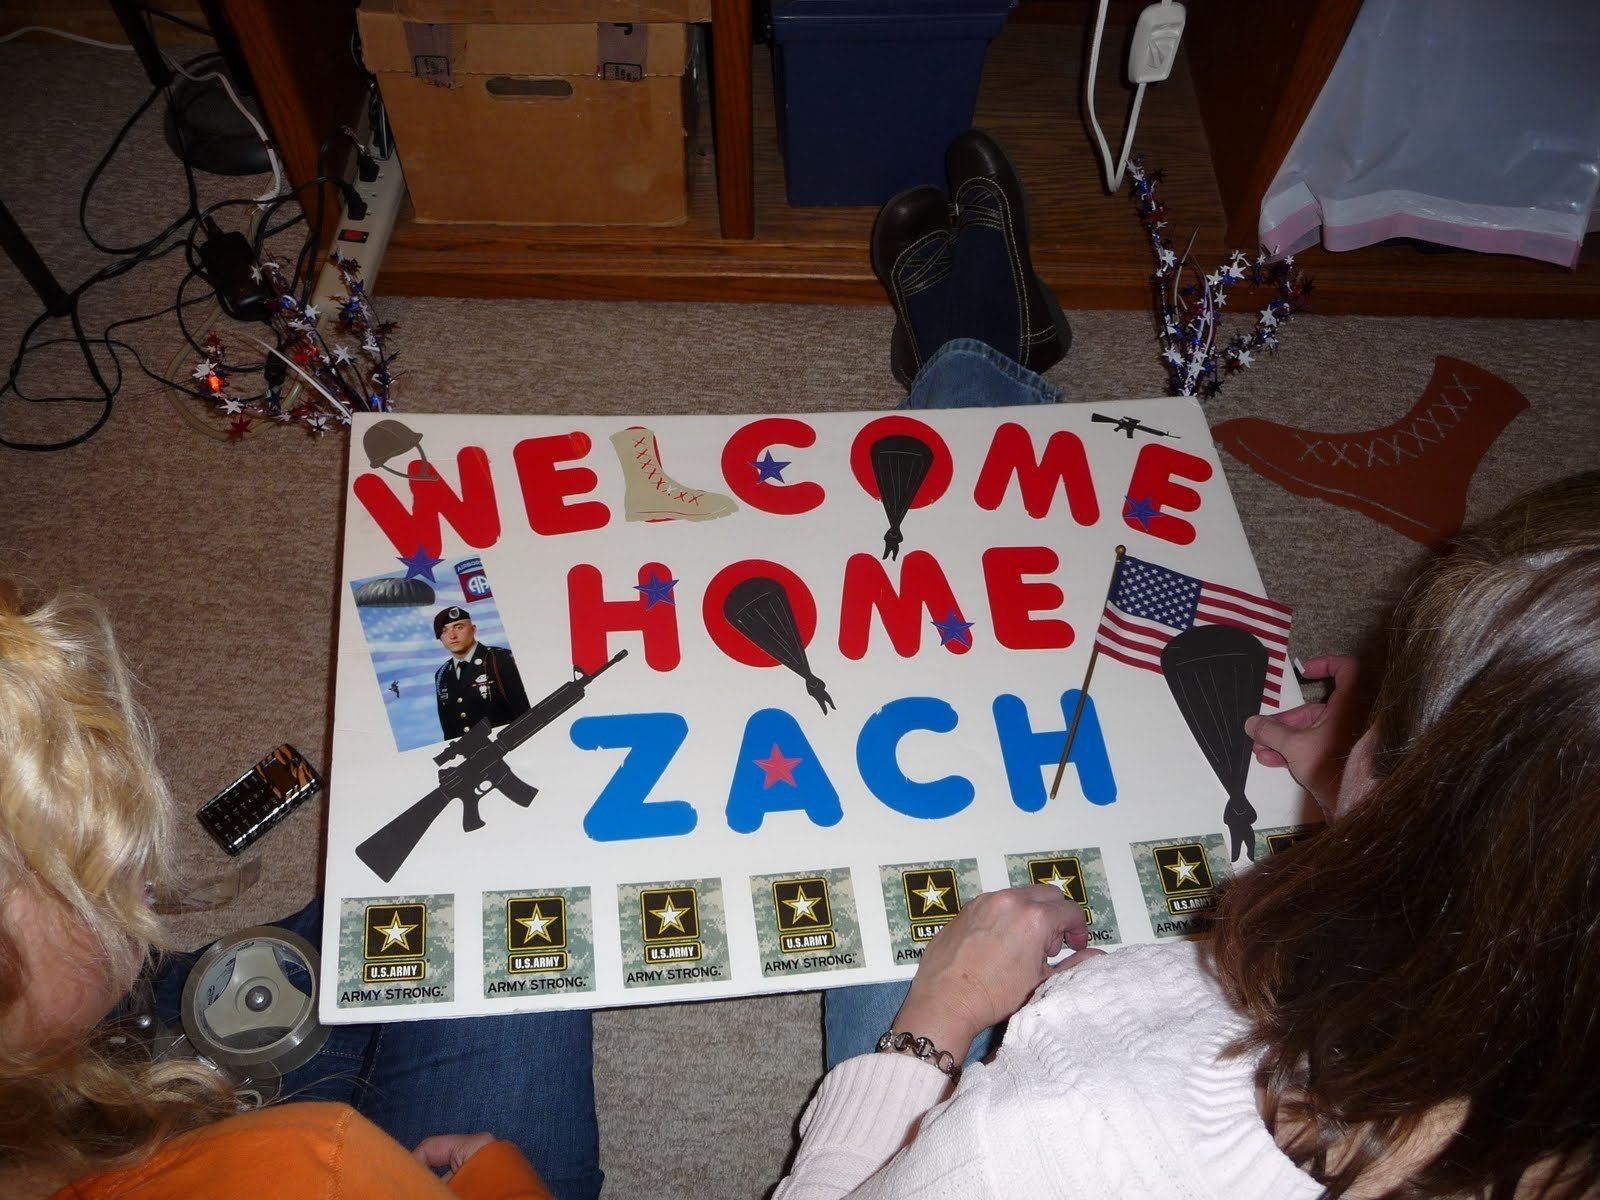 10 Most Recommended Military Welcome Home Sign Ideas welcome home sign ideas army design cincinnati ques 77857 2020